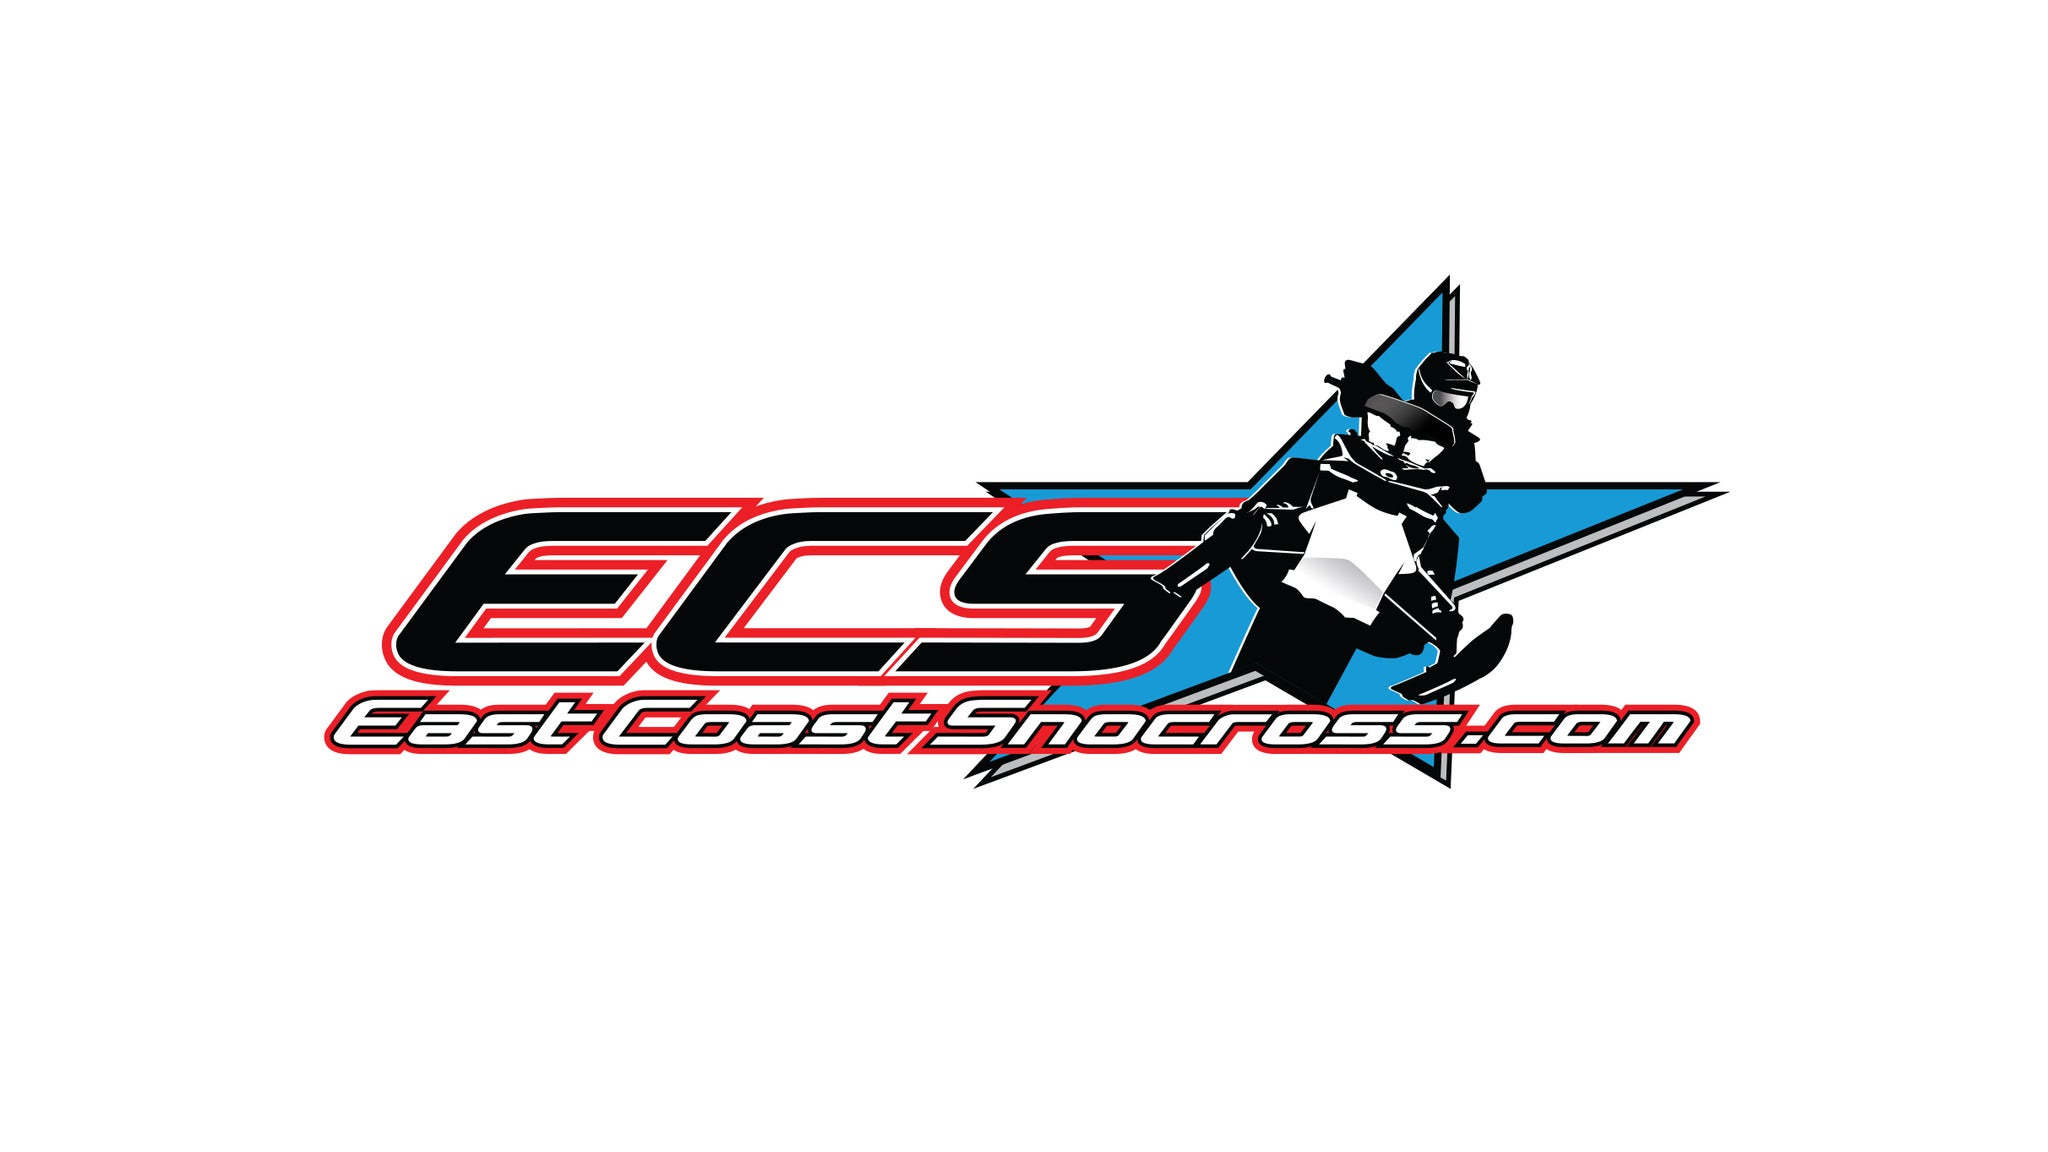 East Coast Snocross Saturday